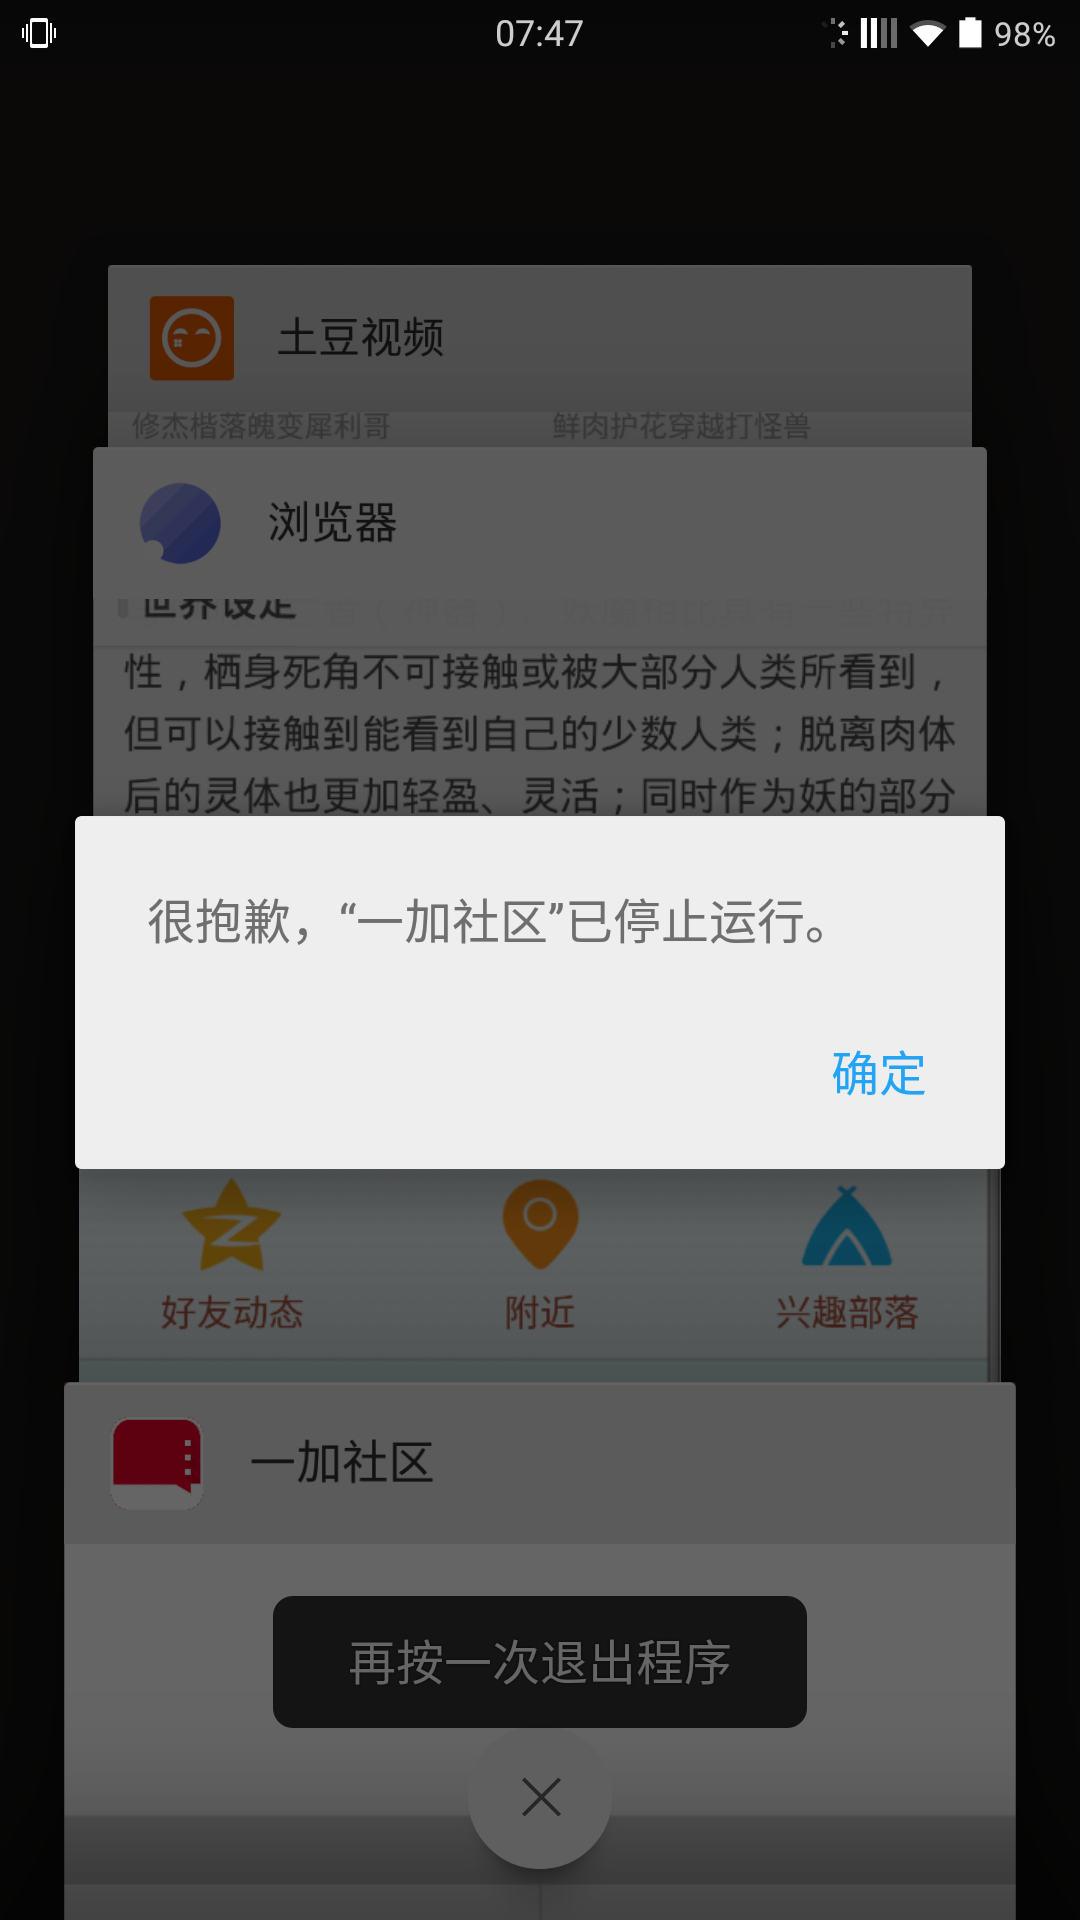 Screenshot_2015-07-21-07-47-08.png